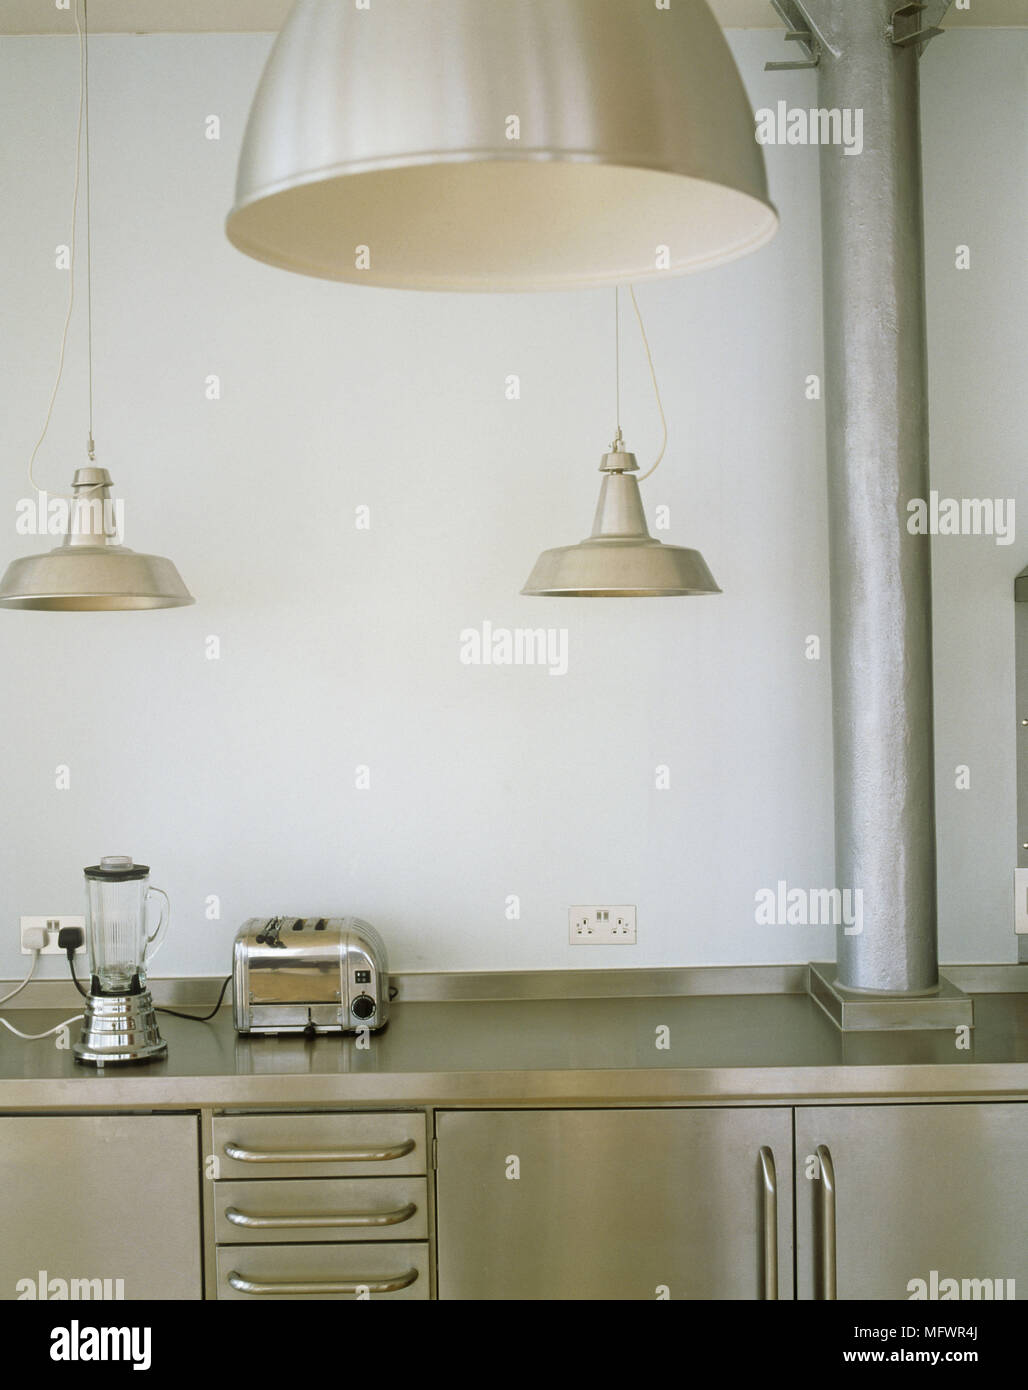 Fitted Kitchens Stock Photos Amp Fitted Kitchens Stock